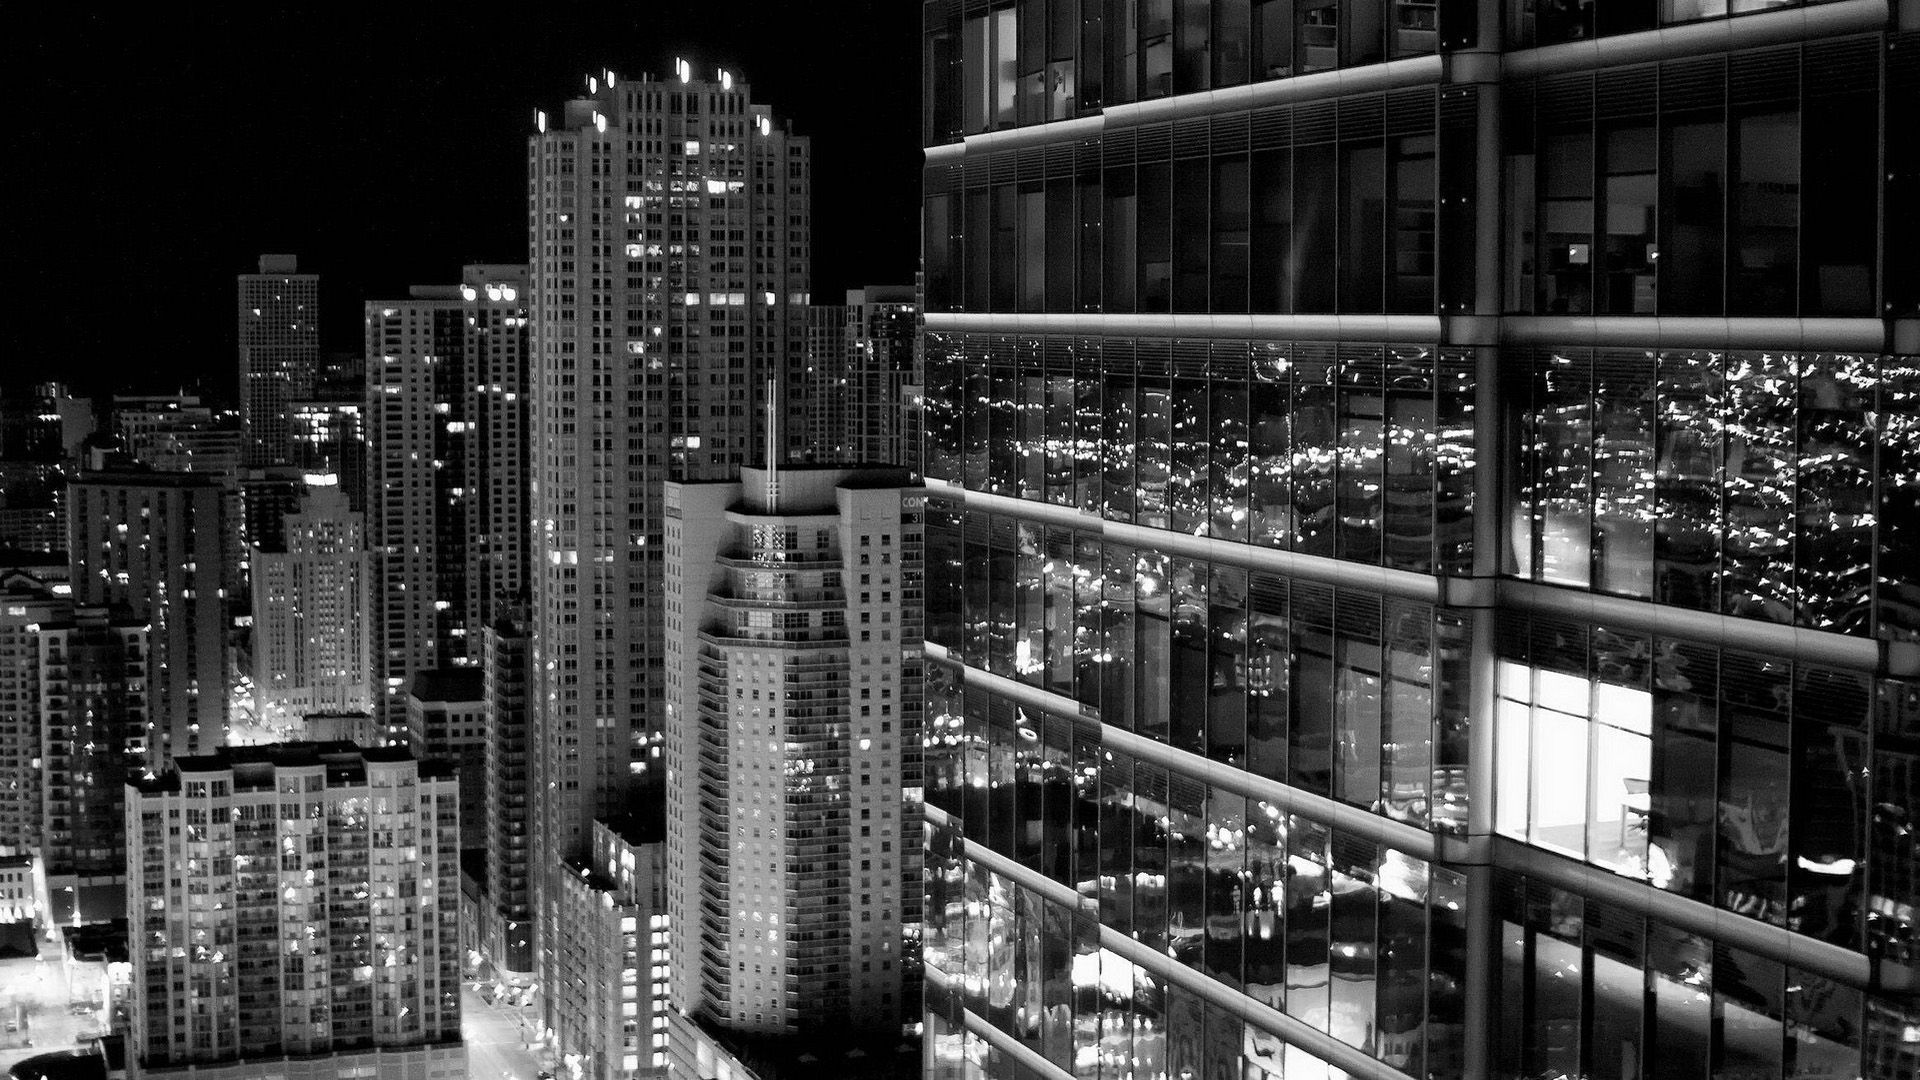 wallpaper hd 1080p black and white buildings hd Mayco Oil in 1920x1080